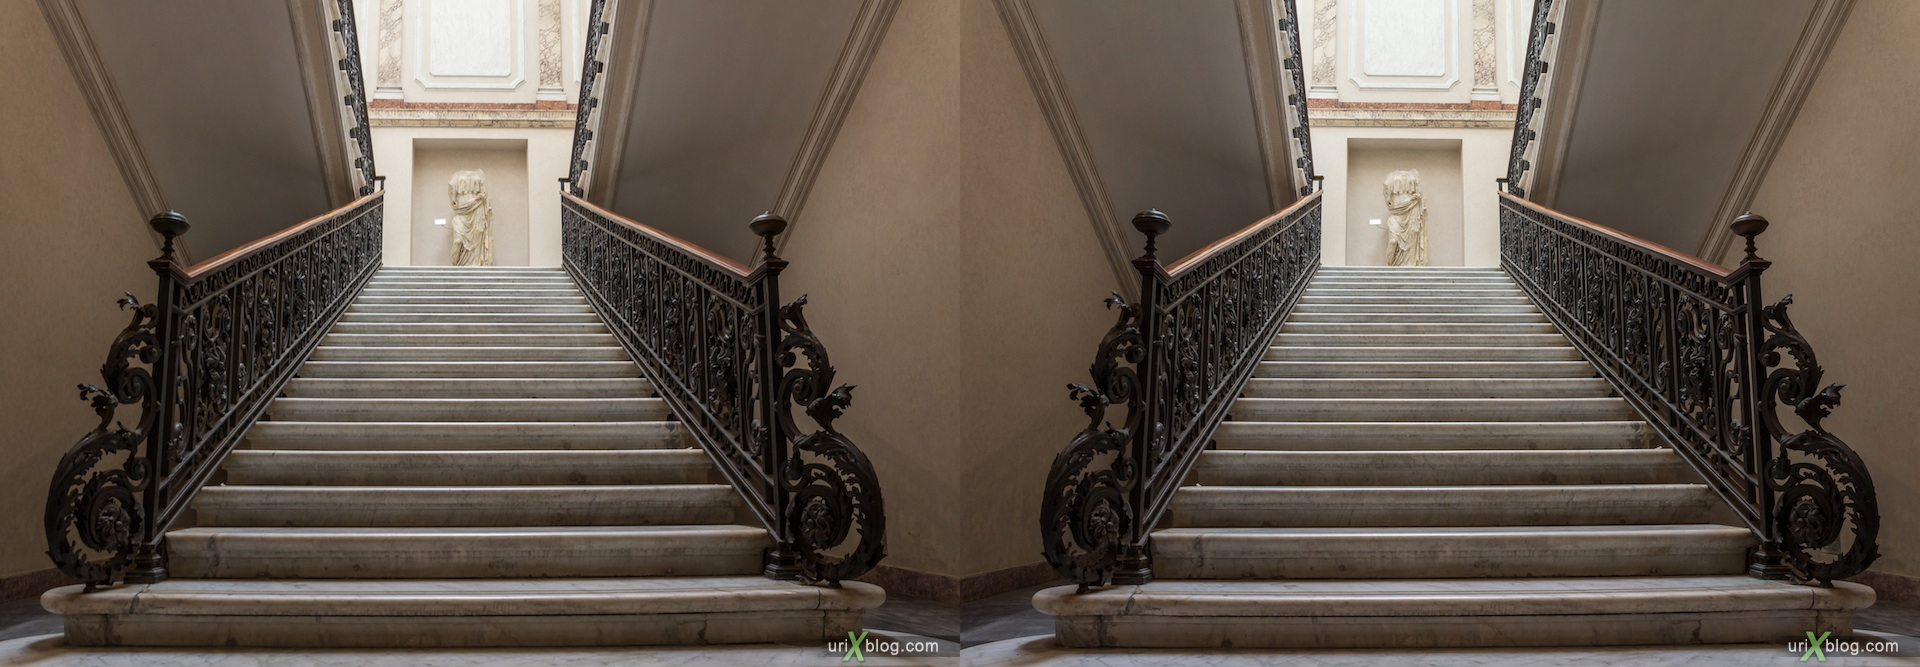 2012, steps, stairs, National Museum of Rome, Diocletian Baths, Rome, Italy, Europe, 3D, stereo pair, cross-eyed, crossview, cross view stereo pair